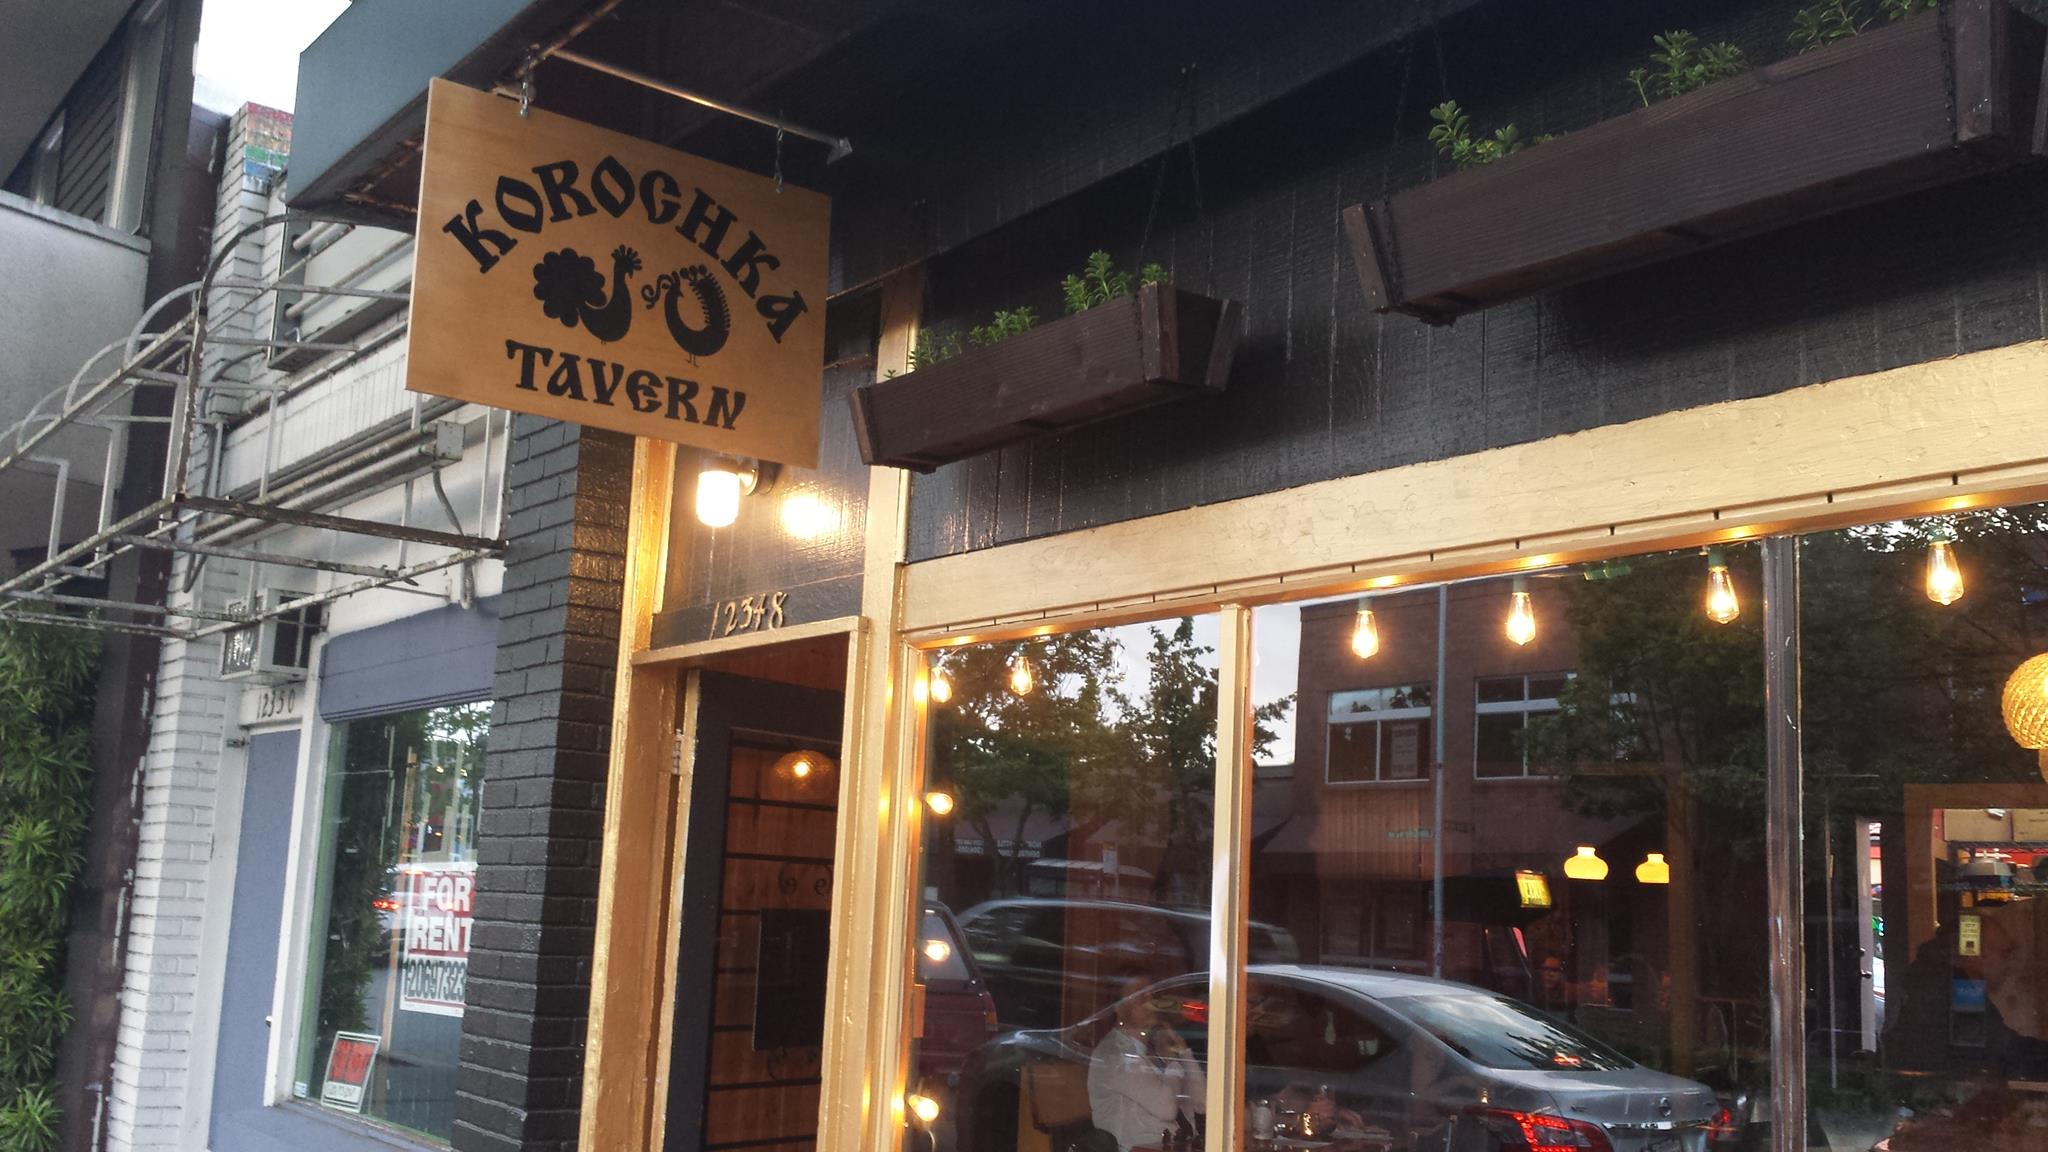 The sign outside Korochka Tavern in Lake City, surrounded by lights and wood trimming.